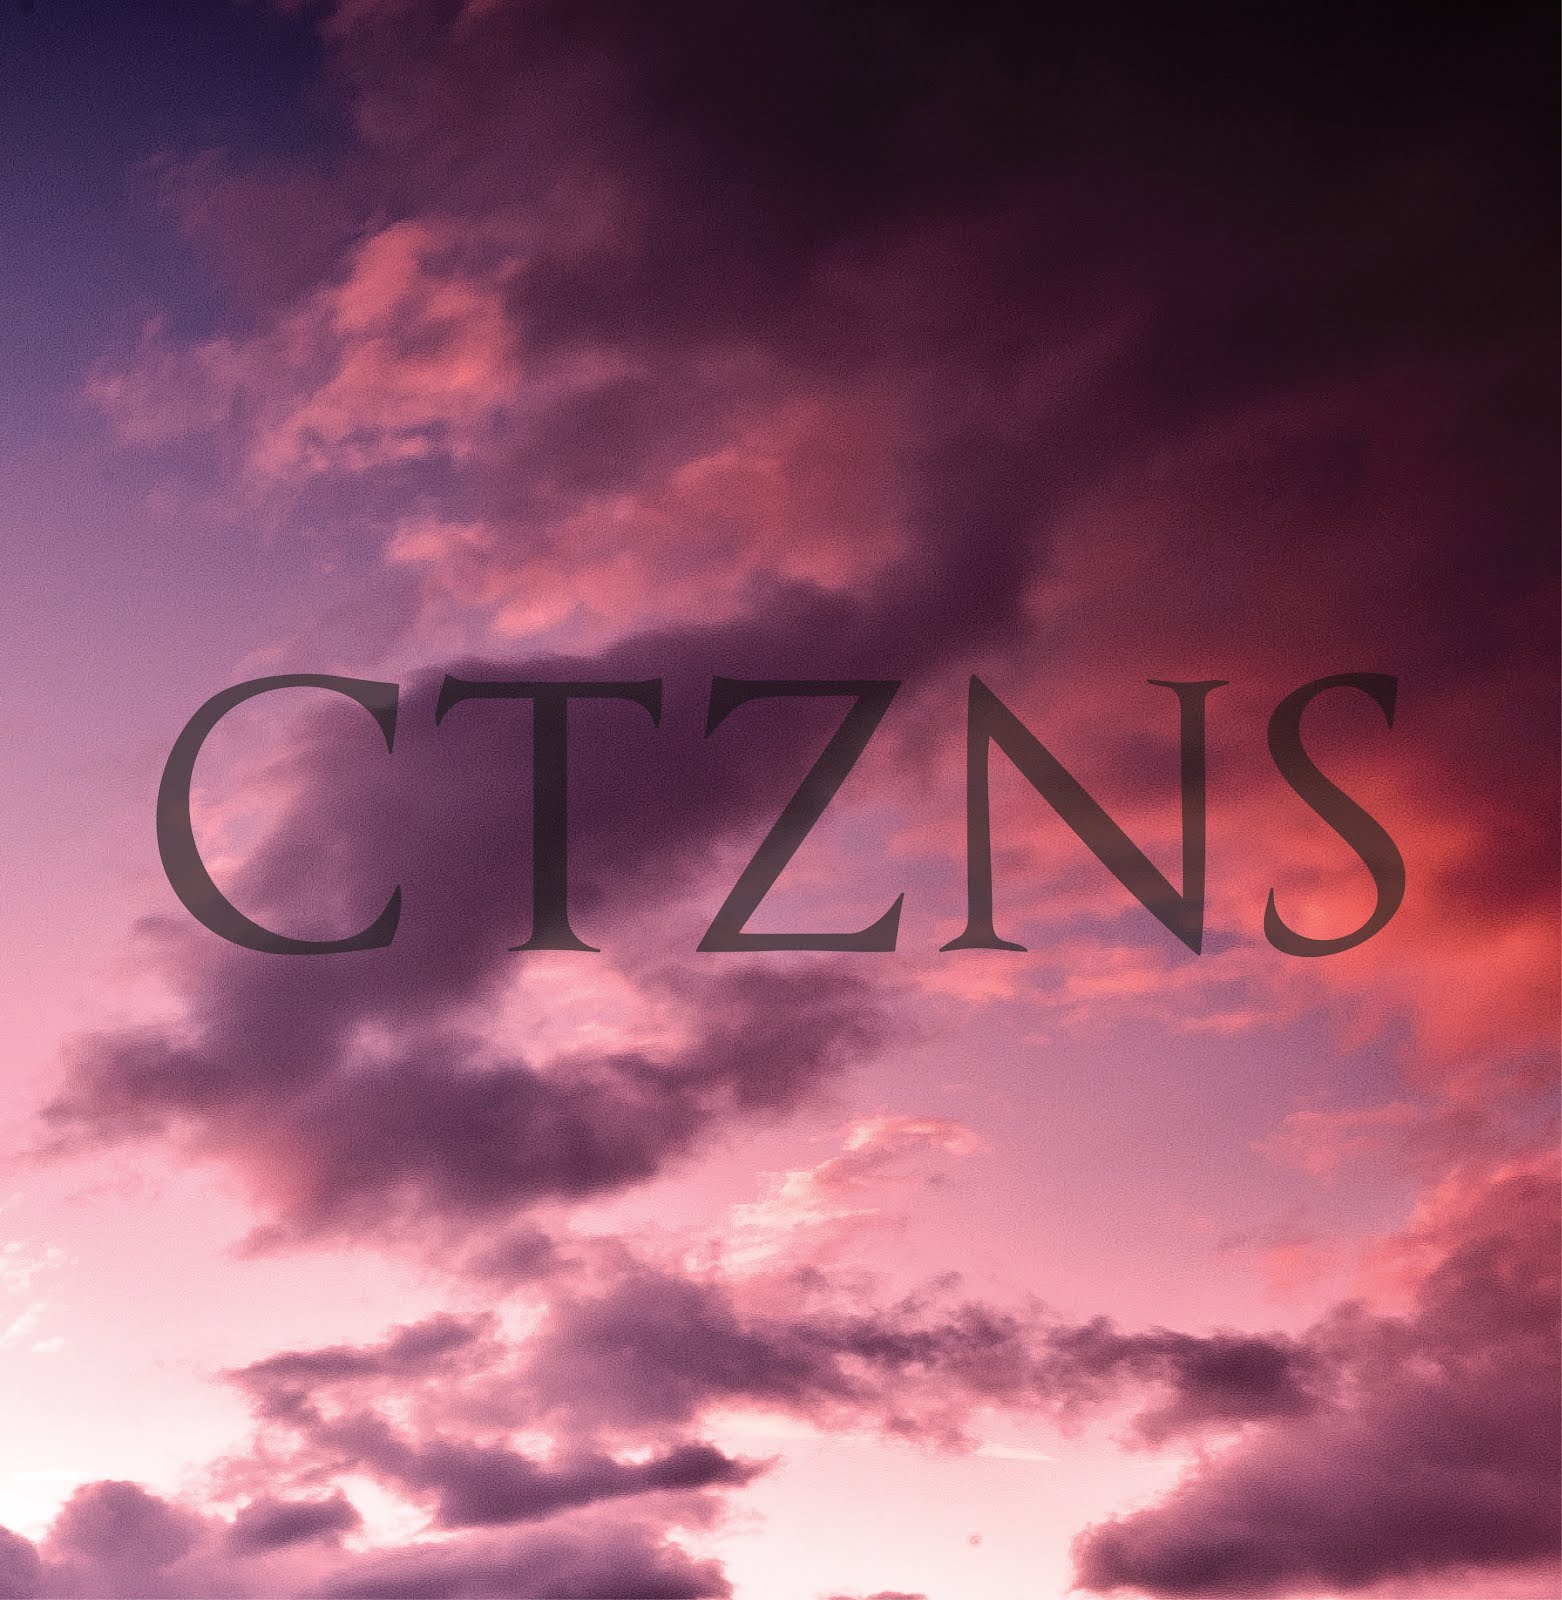 citizens cover